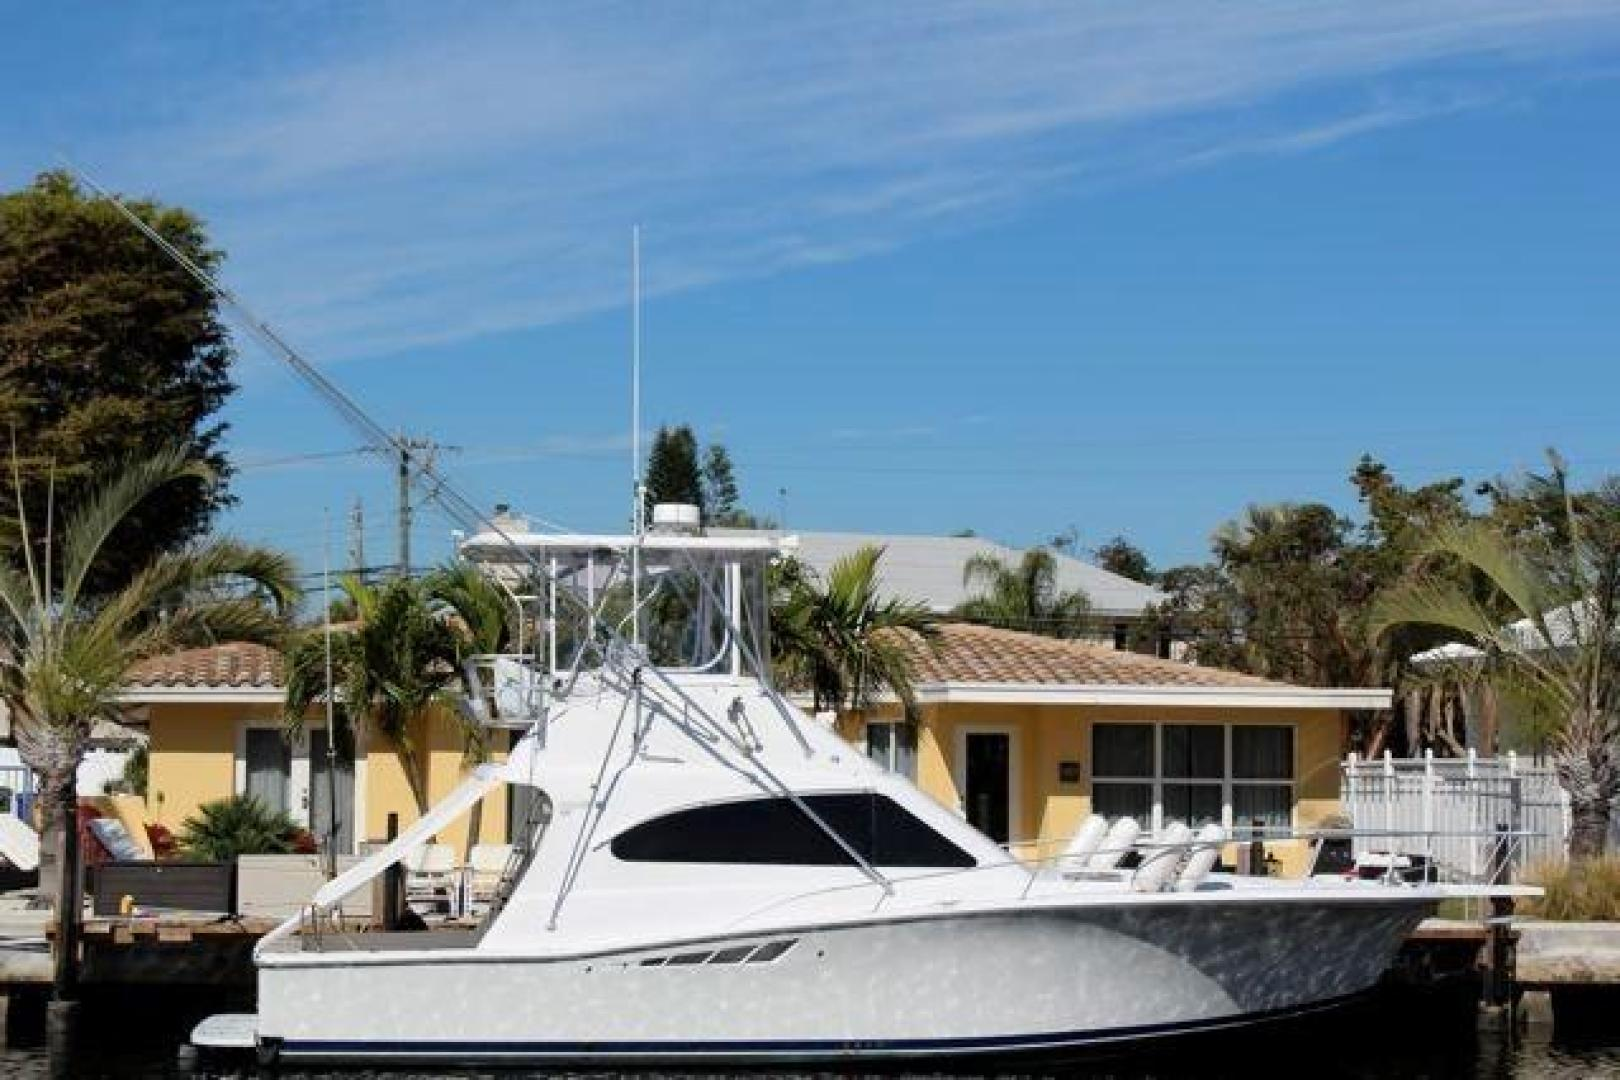 Luhrs-40 Convertible 1999-Seagar Time Pompano Beach-Florida-United States-Profile-923924 | Thumbnail